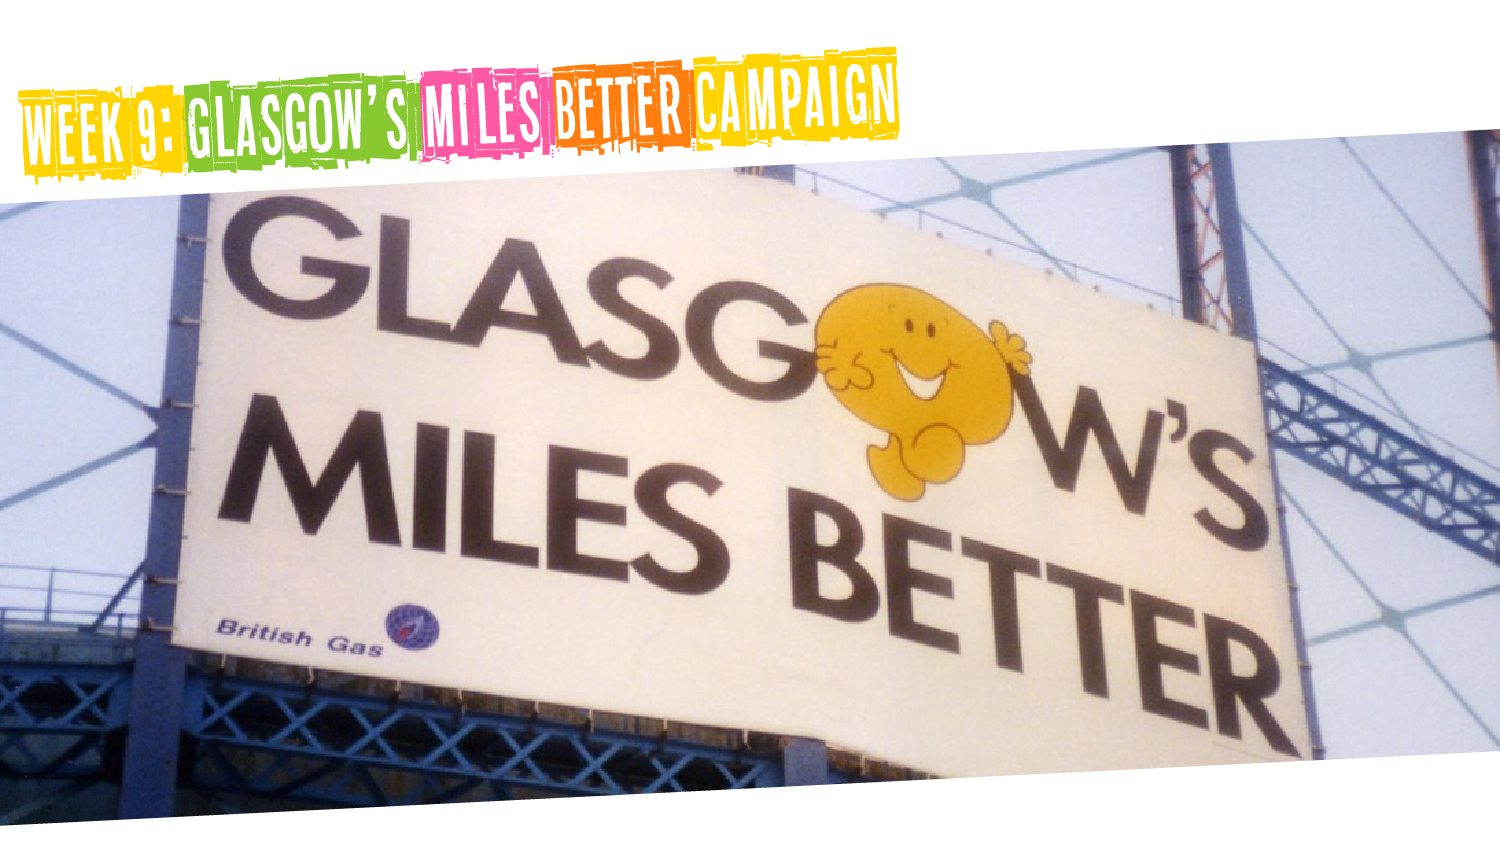 IYM Week 9: Glasgow's Miles Better Campaign